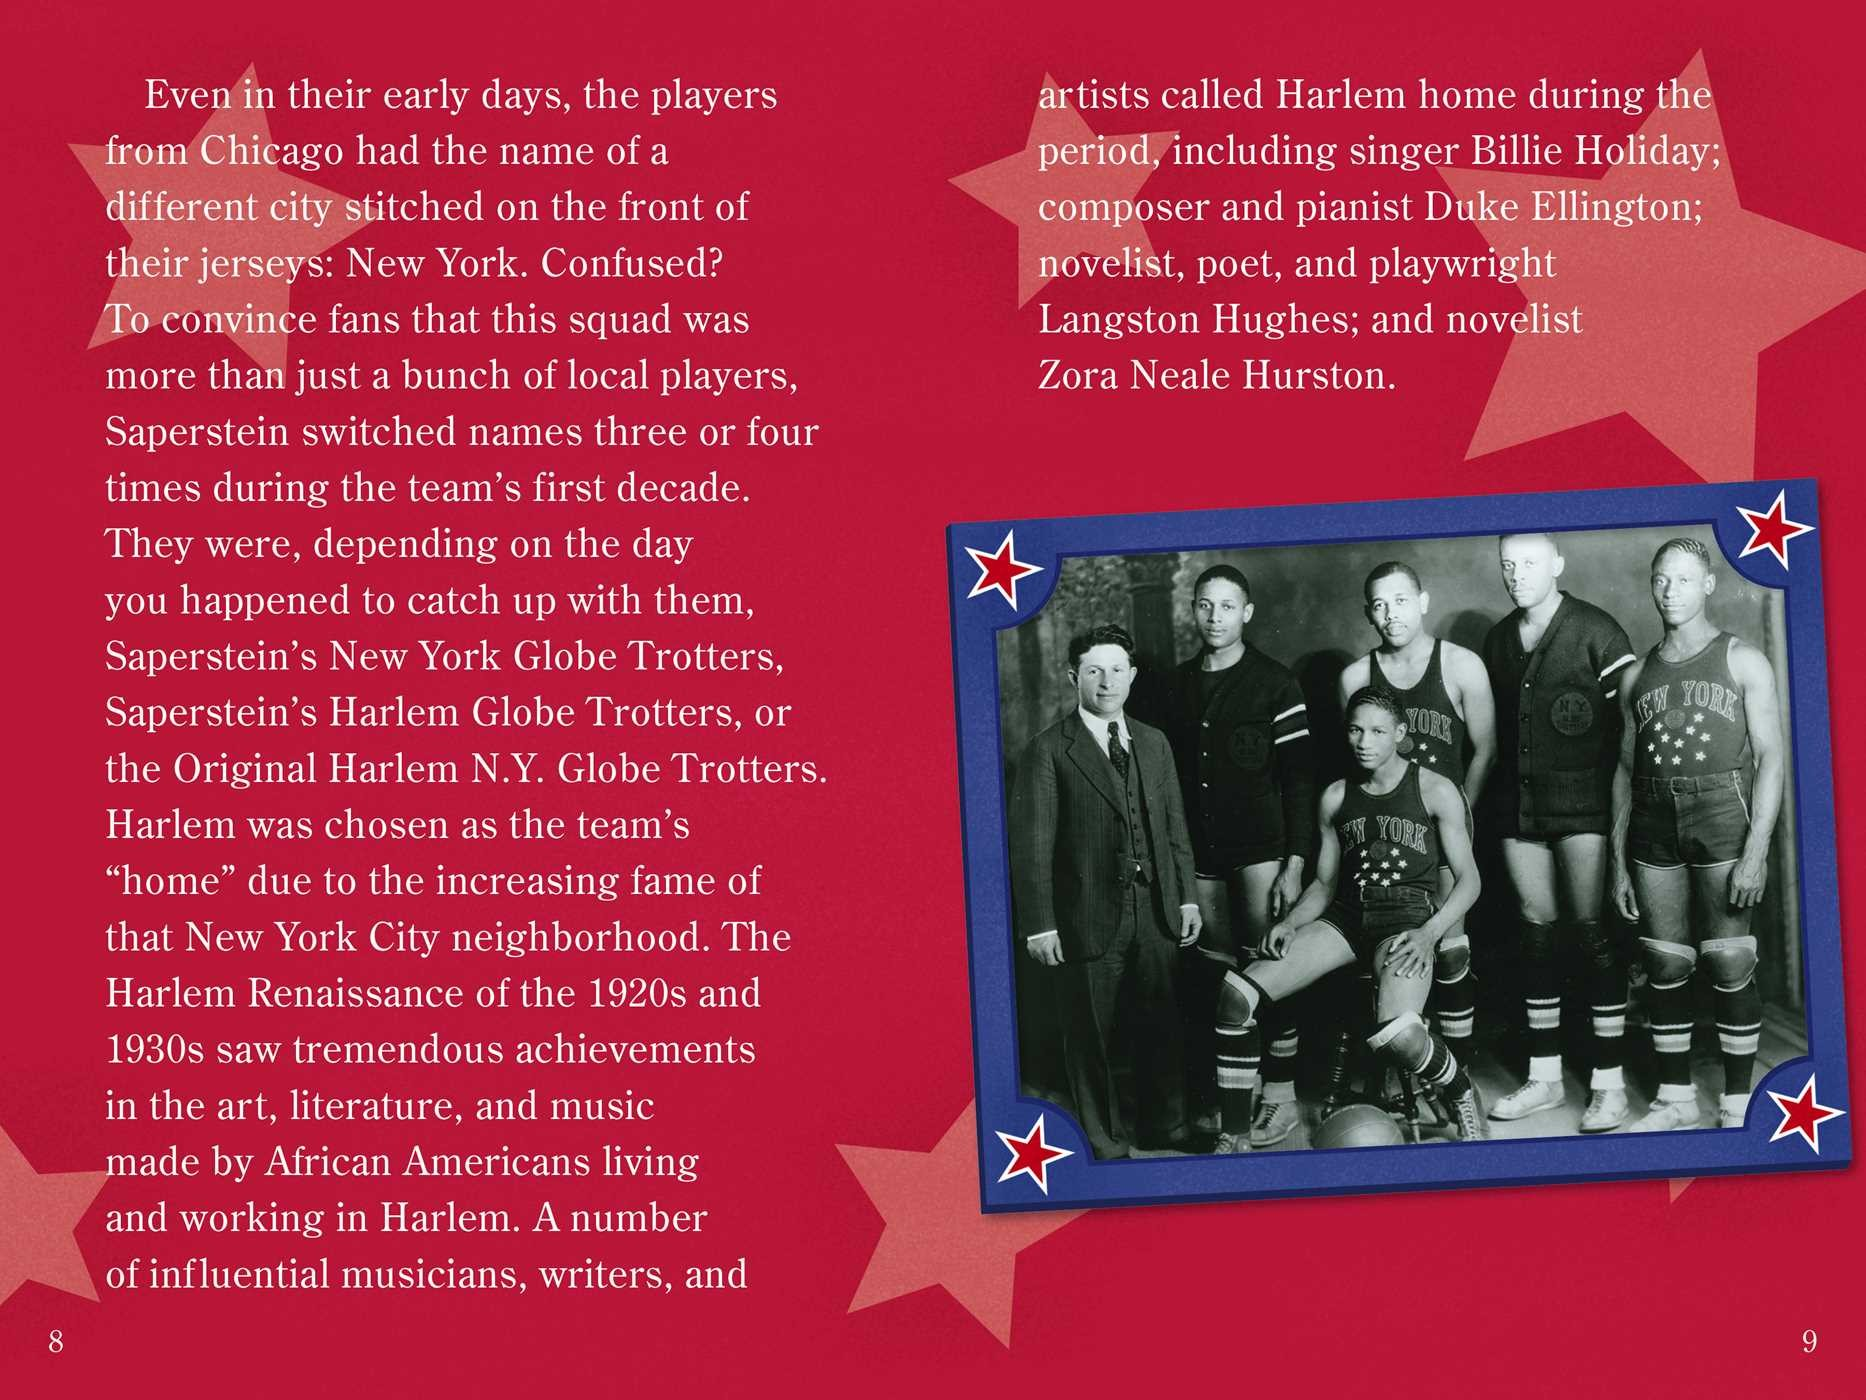 The superstar story of the harlem globetrotters 9781481487481.in02